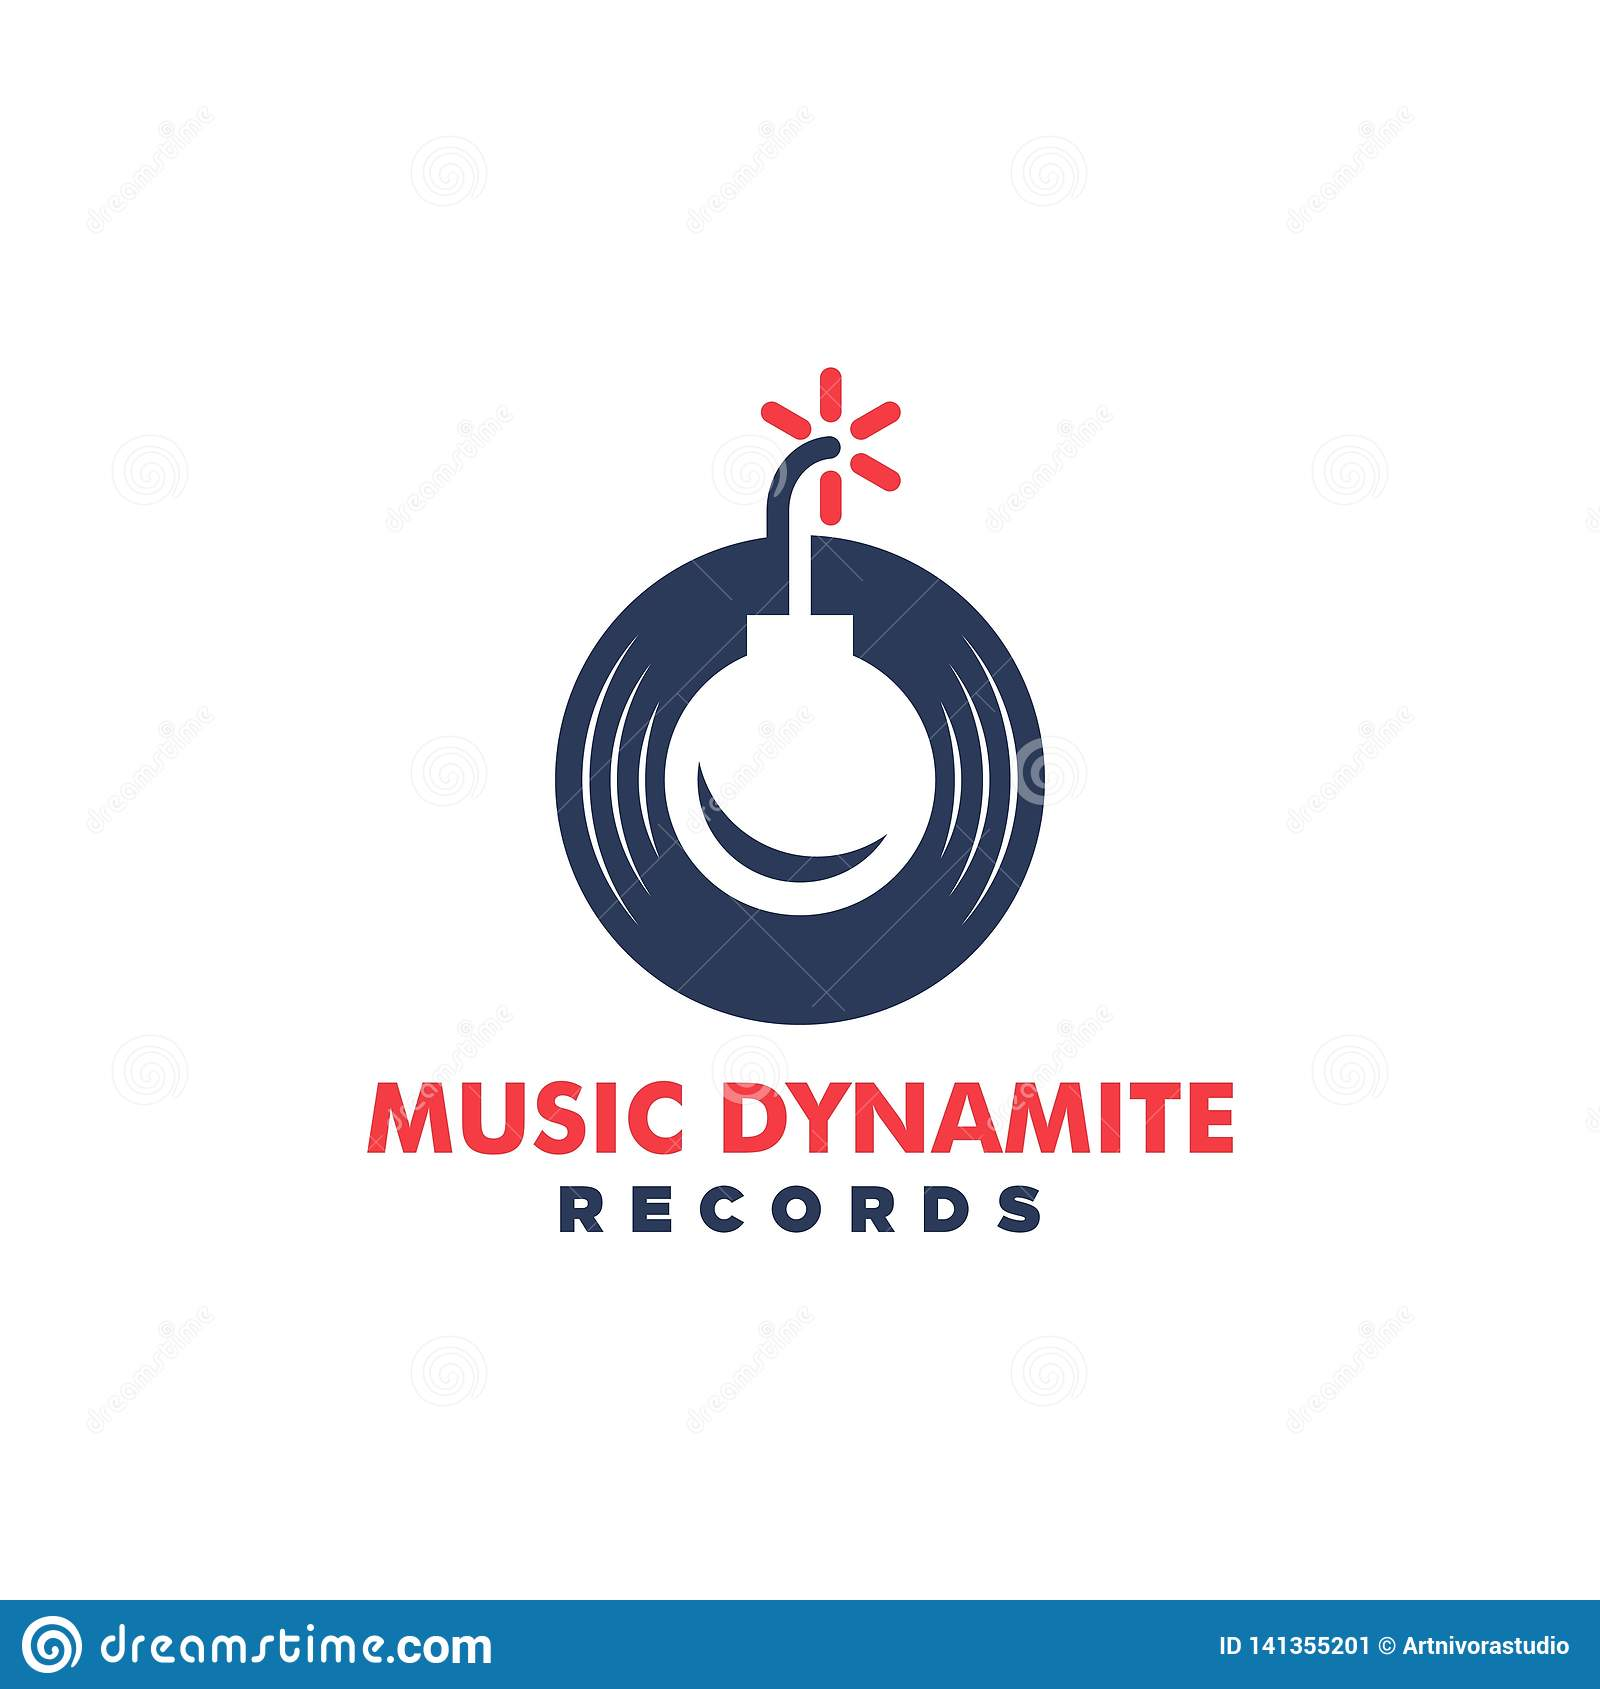 Music Dynamite Concept illustration vector Design template